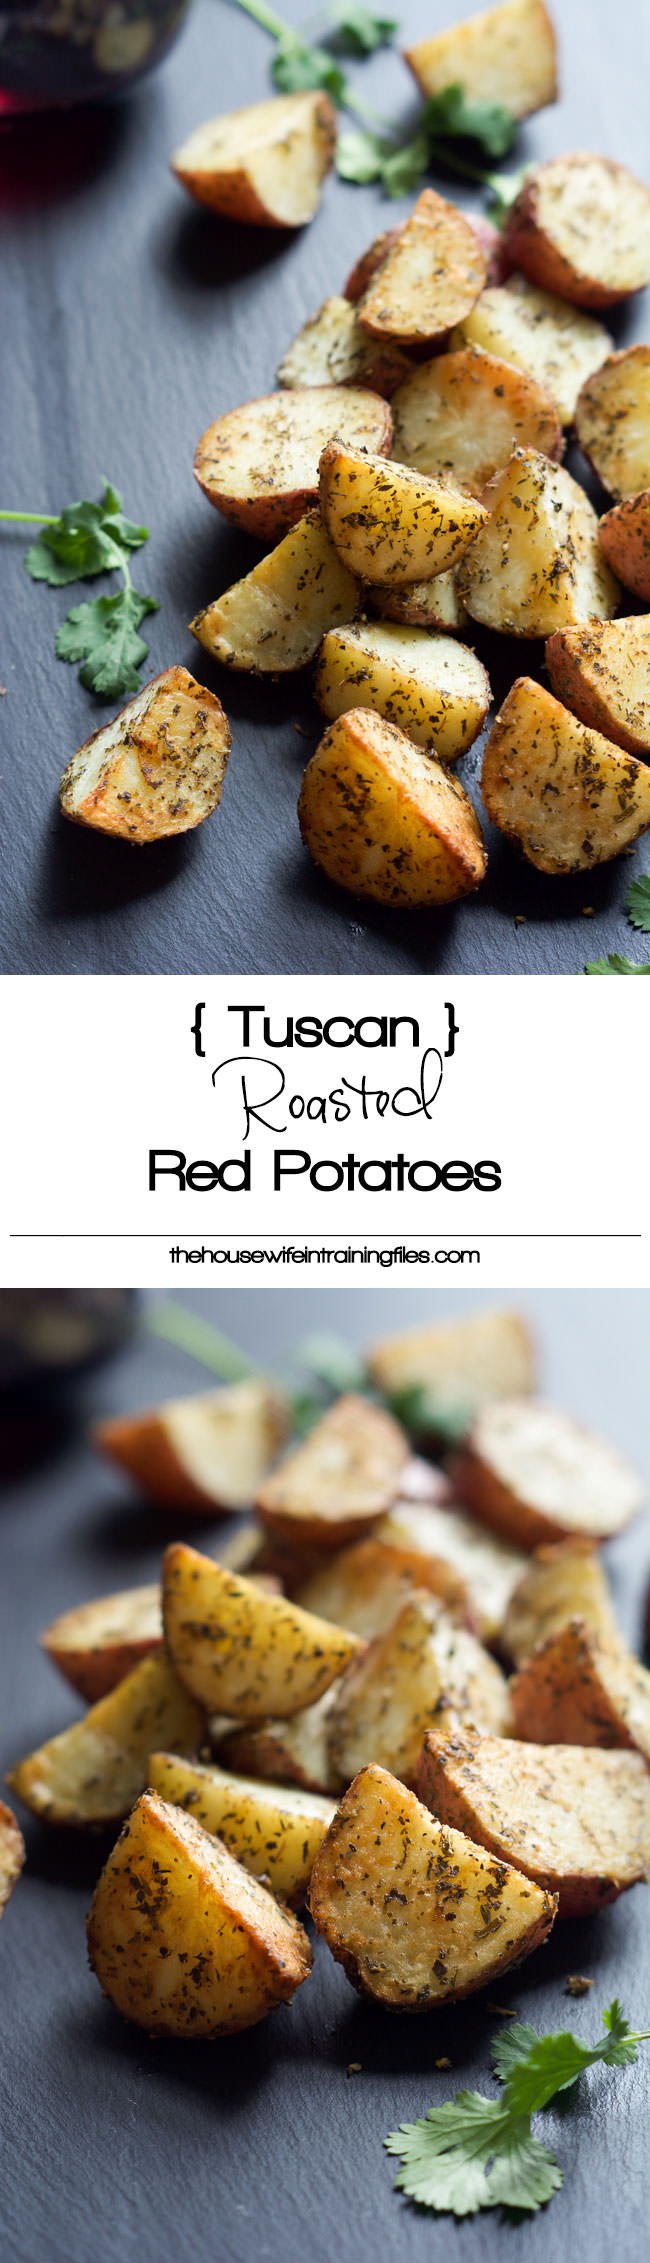 Healthy Oven Roasted Potatoes  Simple Tuscan Oven Roasted Red Potatoes